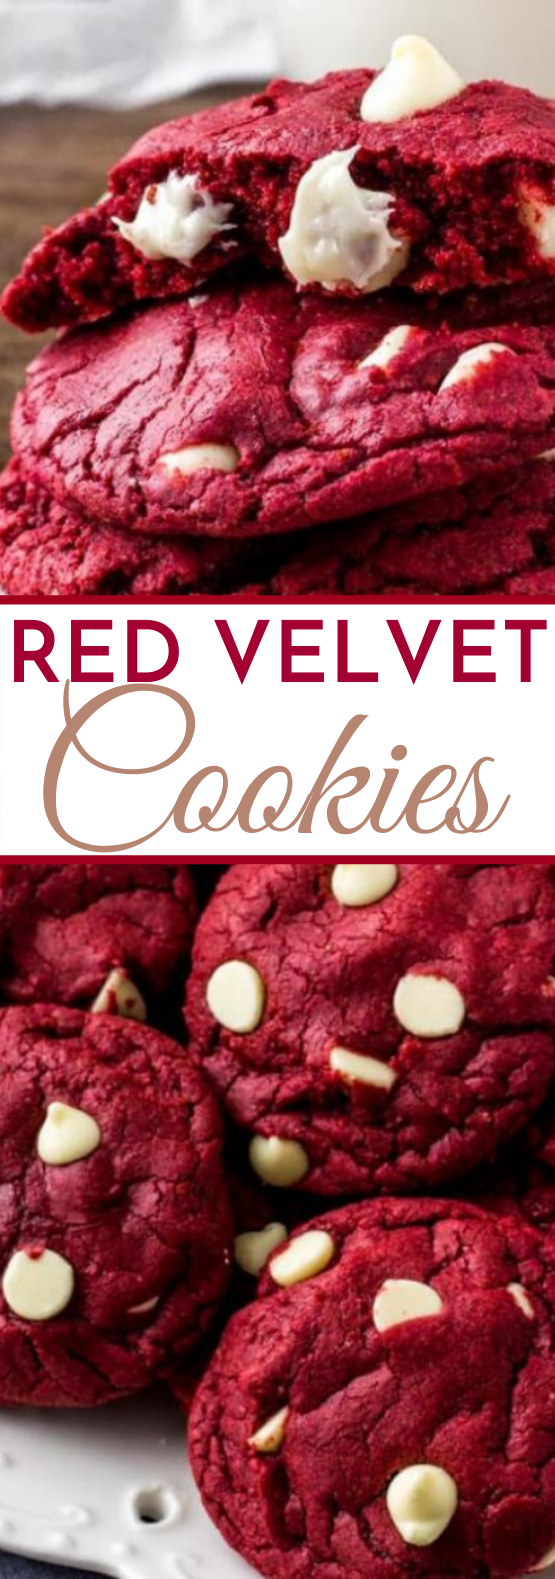 Red Velvet Cake Mix Cookies #desserts #cookies #baking #valentine #cake